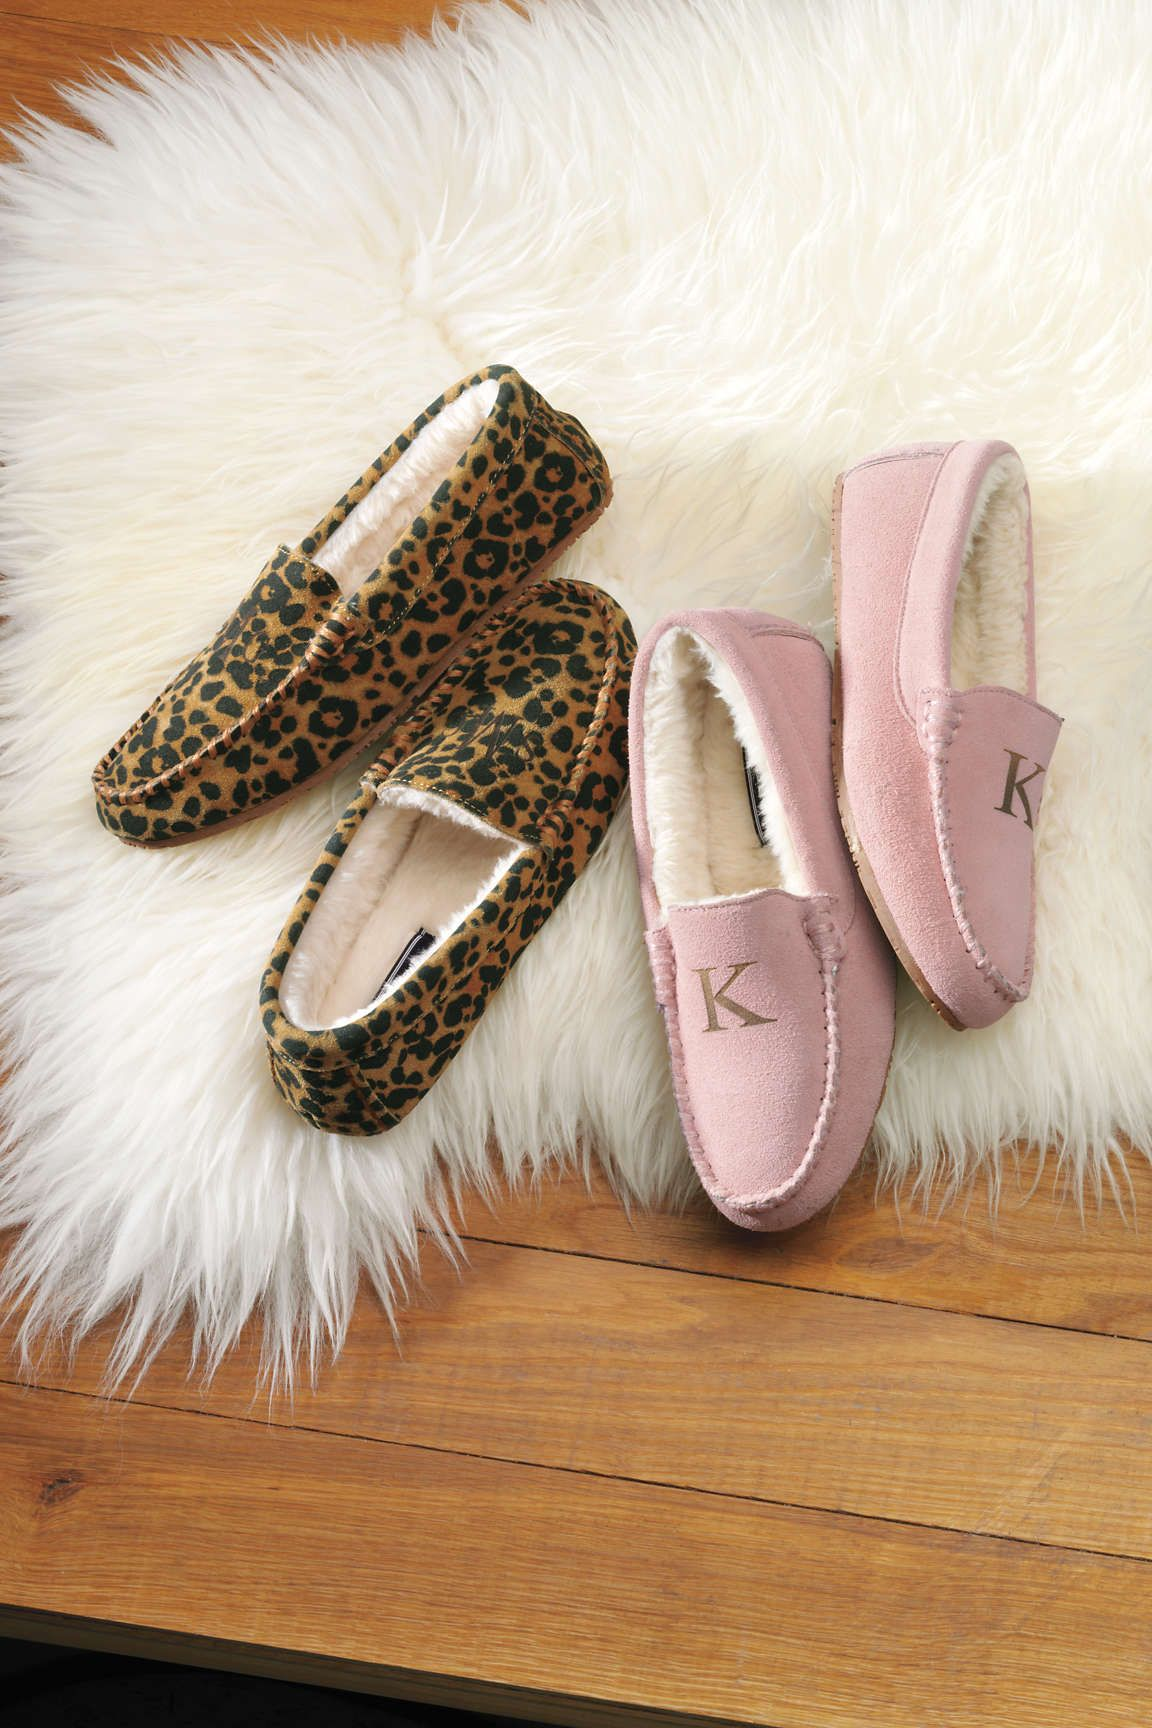 Women's Suede Moccasin Slippers from